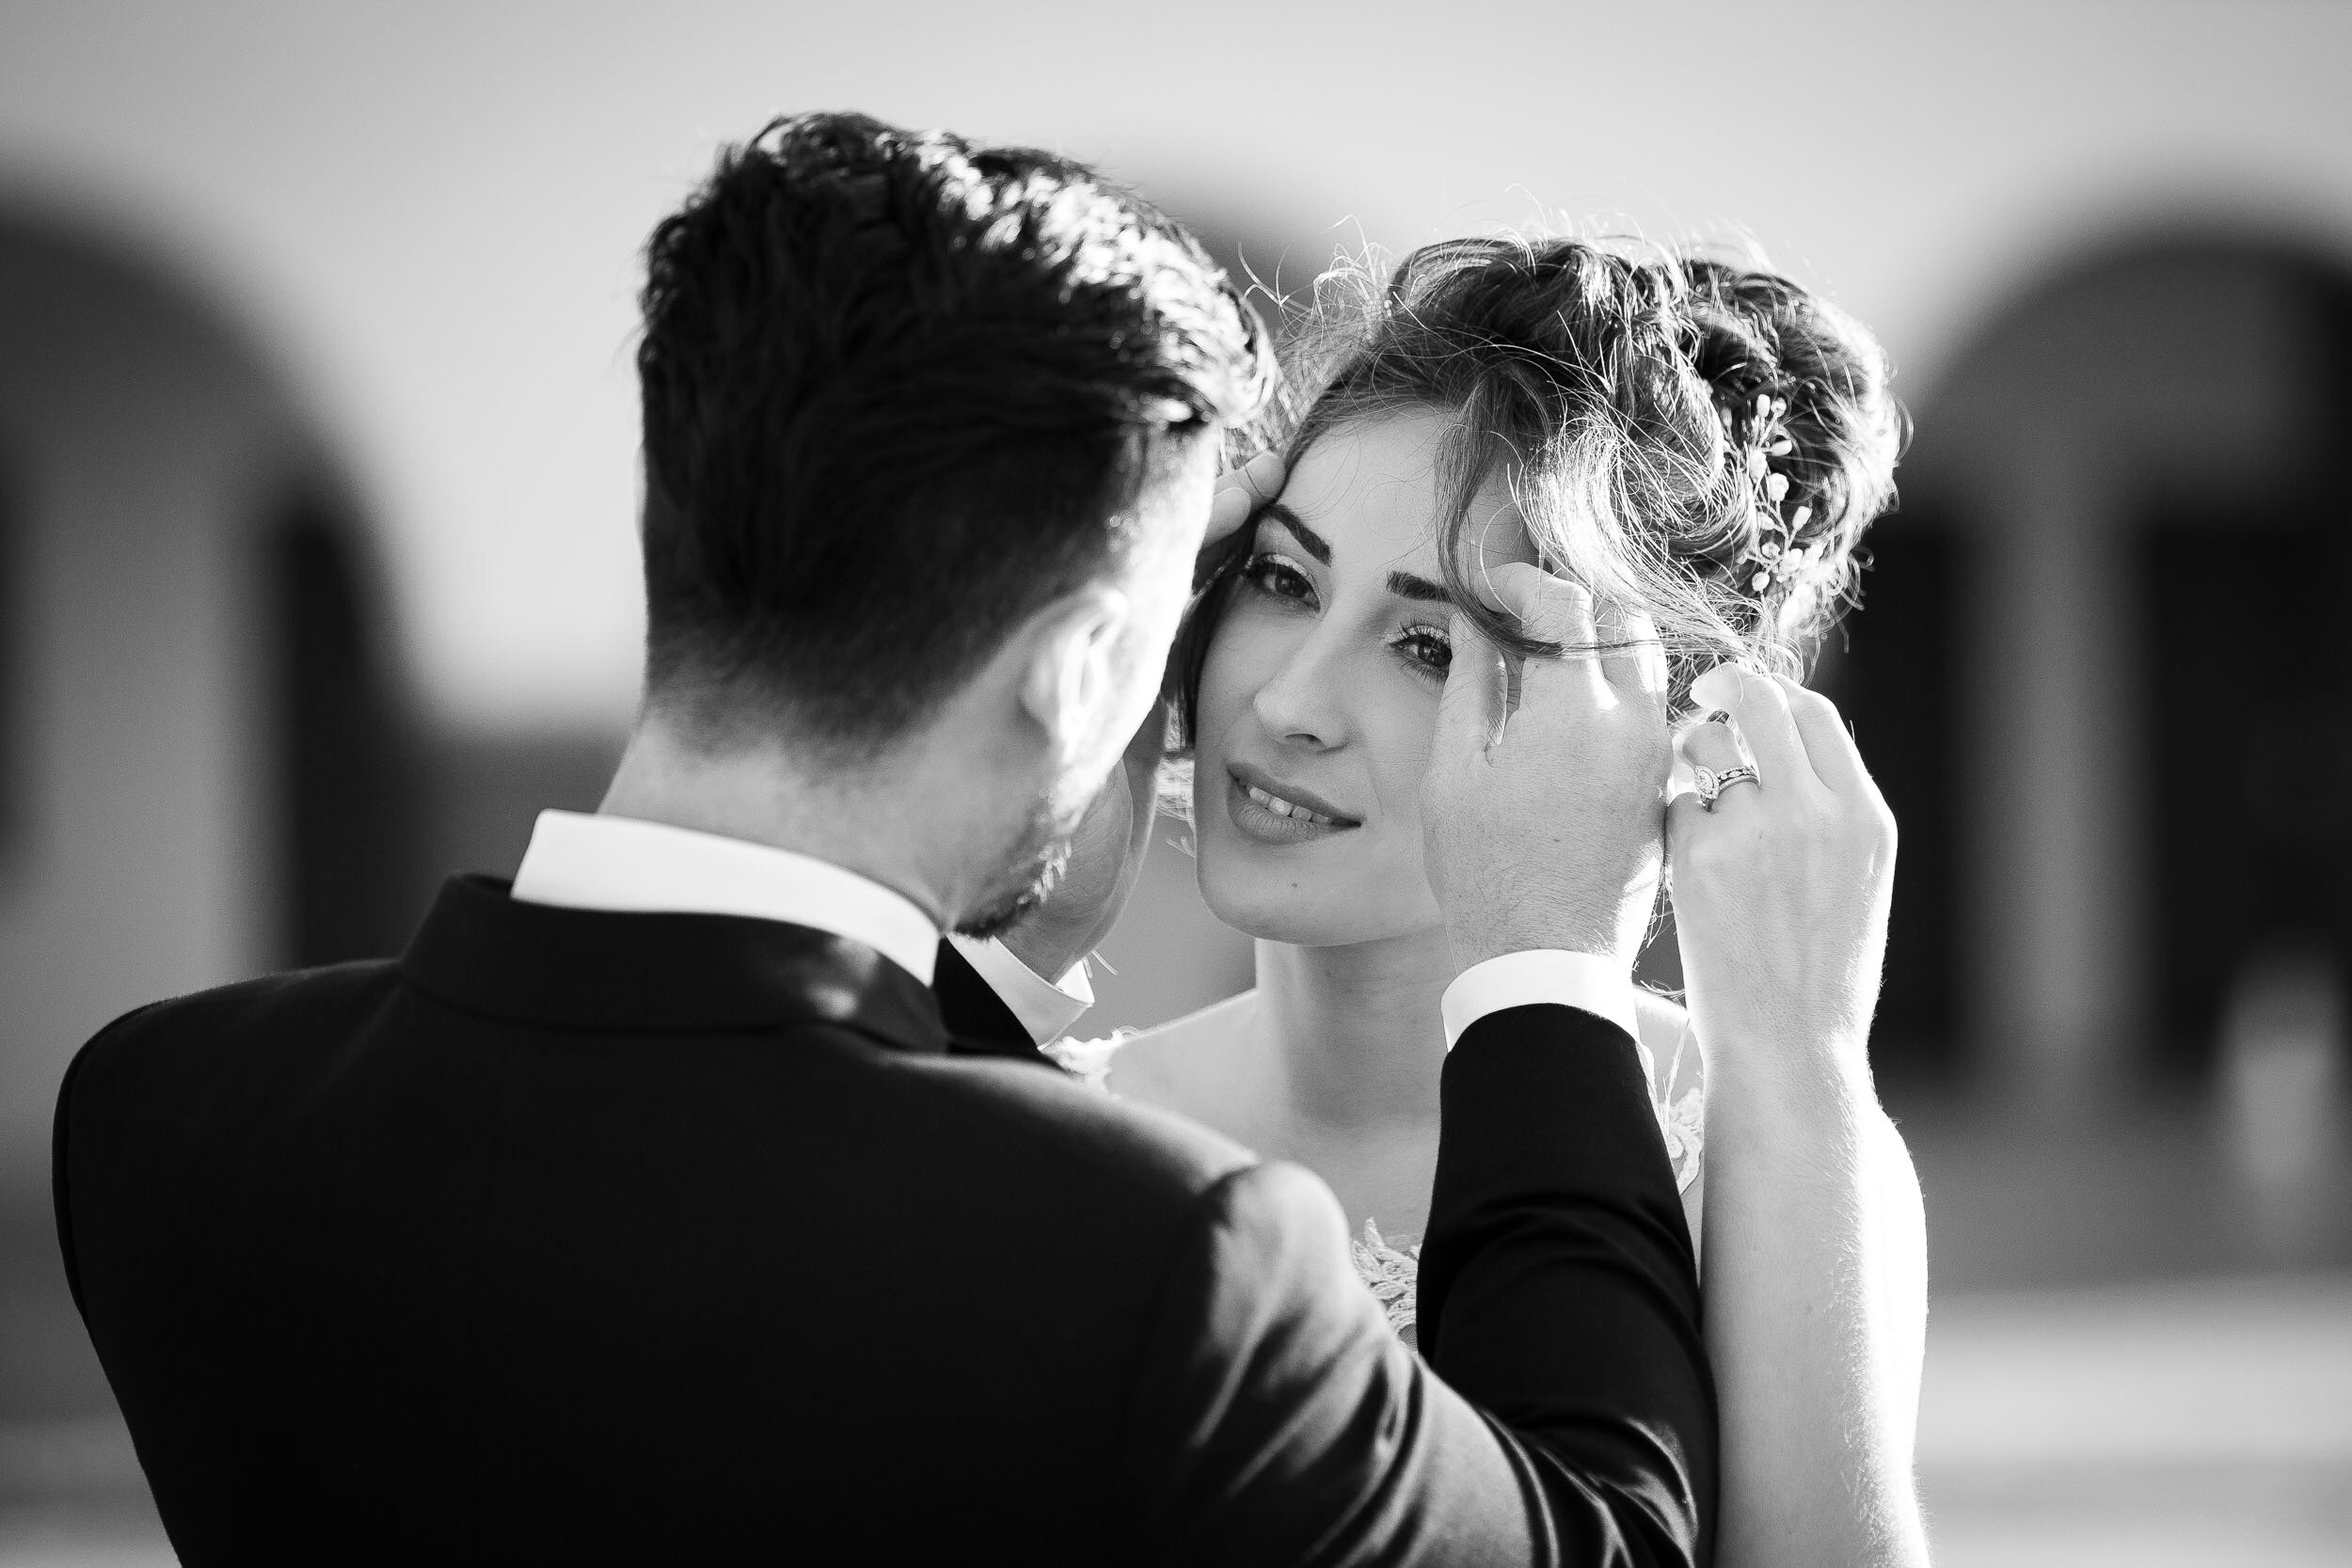 groom-touching-brides-face-during-wedding-at-hotel-mission-de-oro.jpg